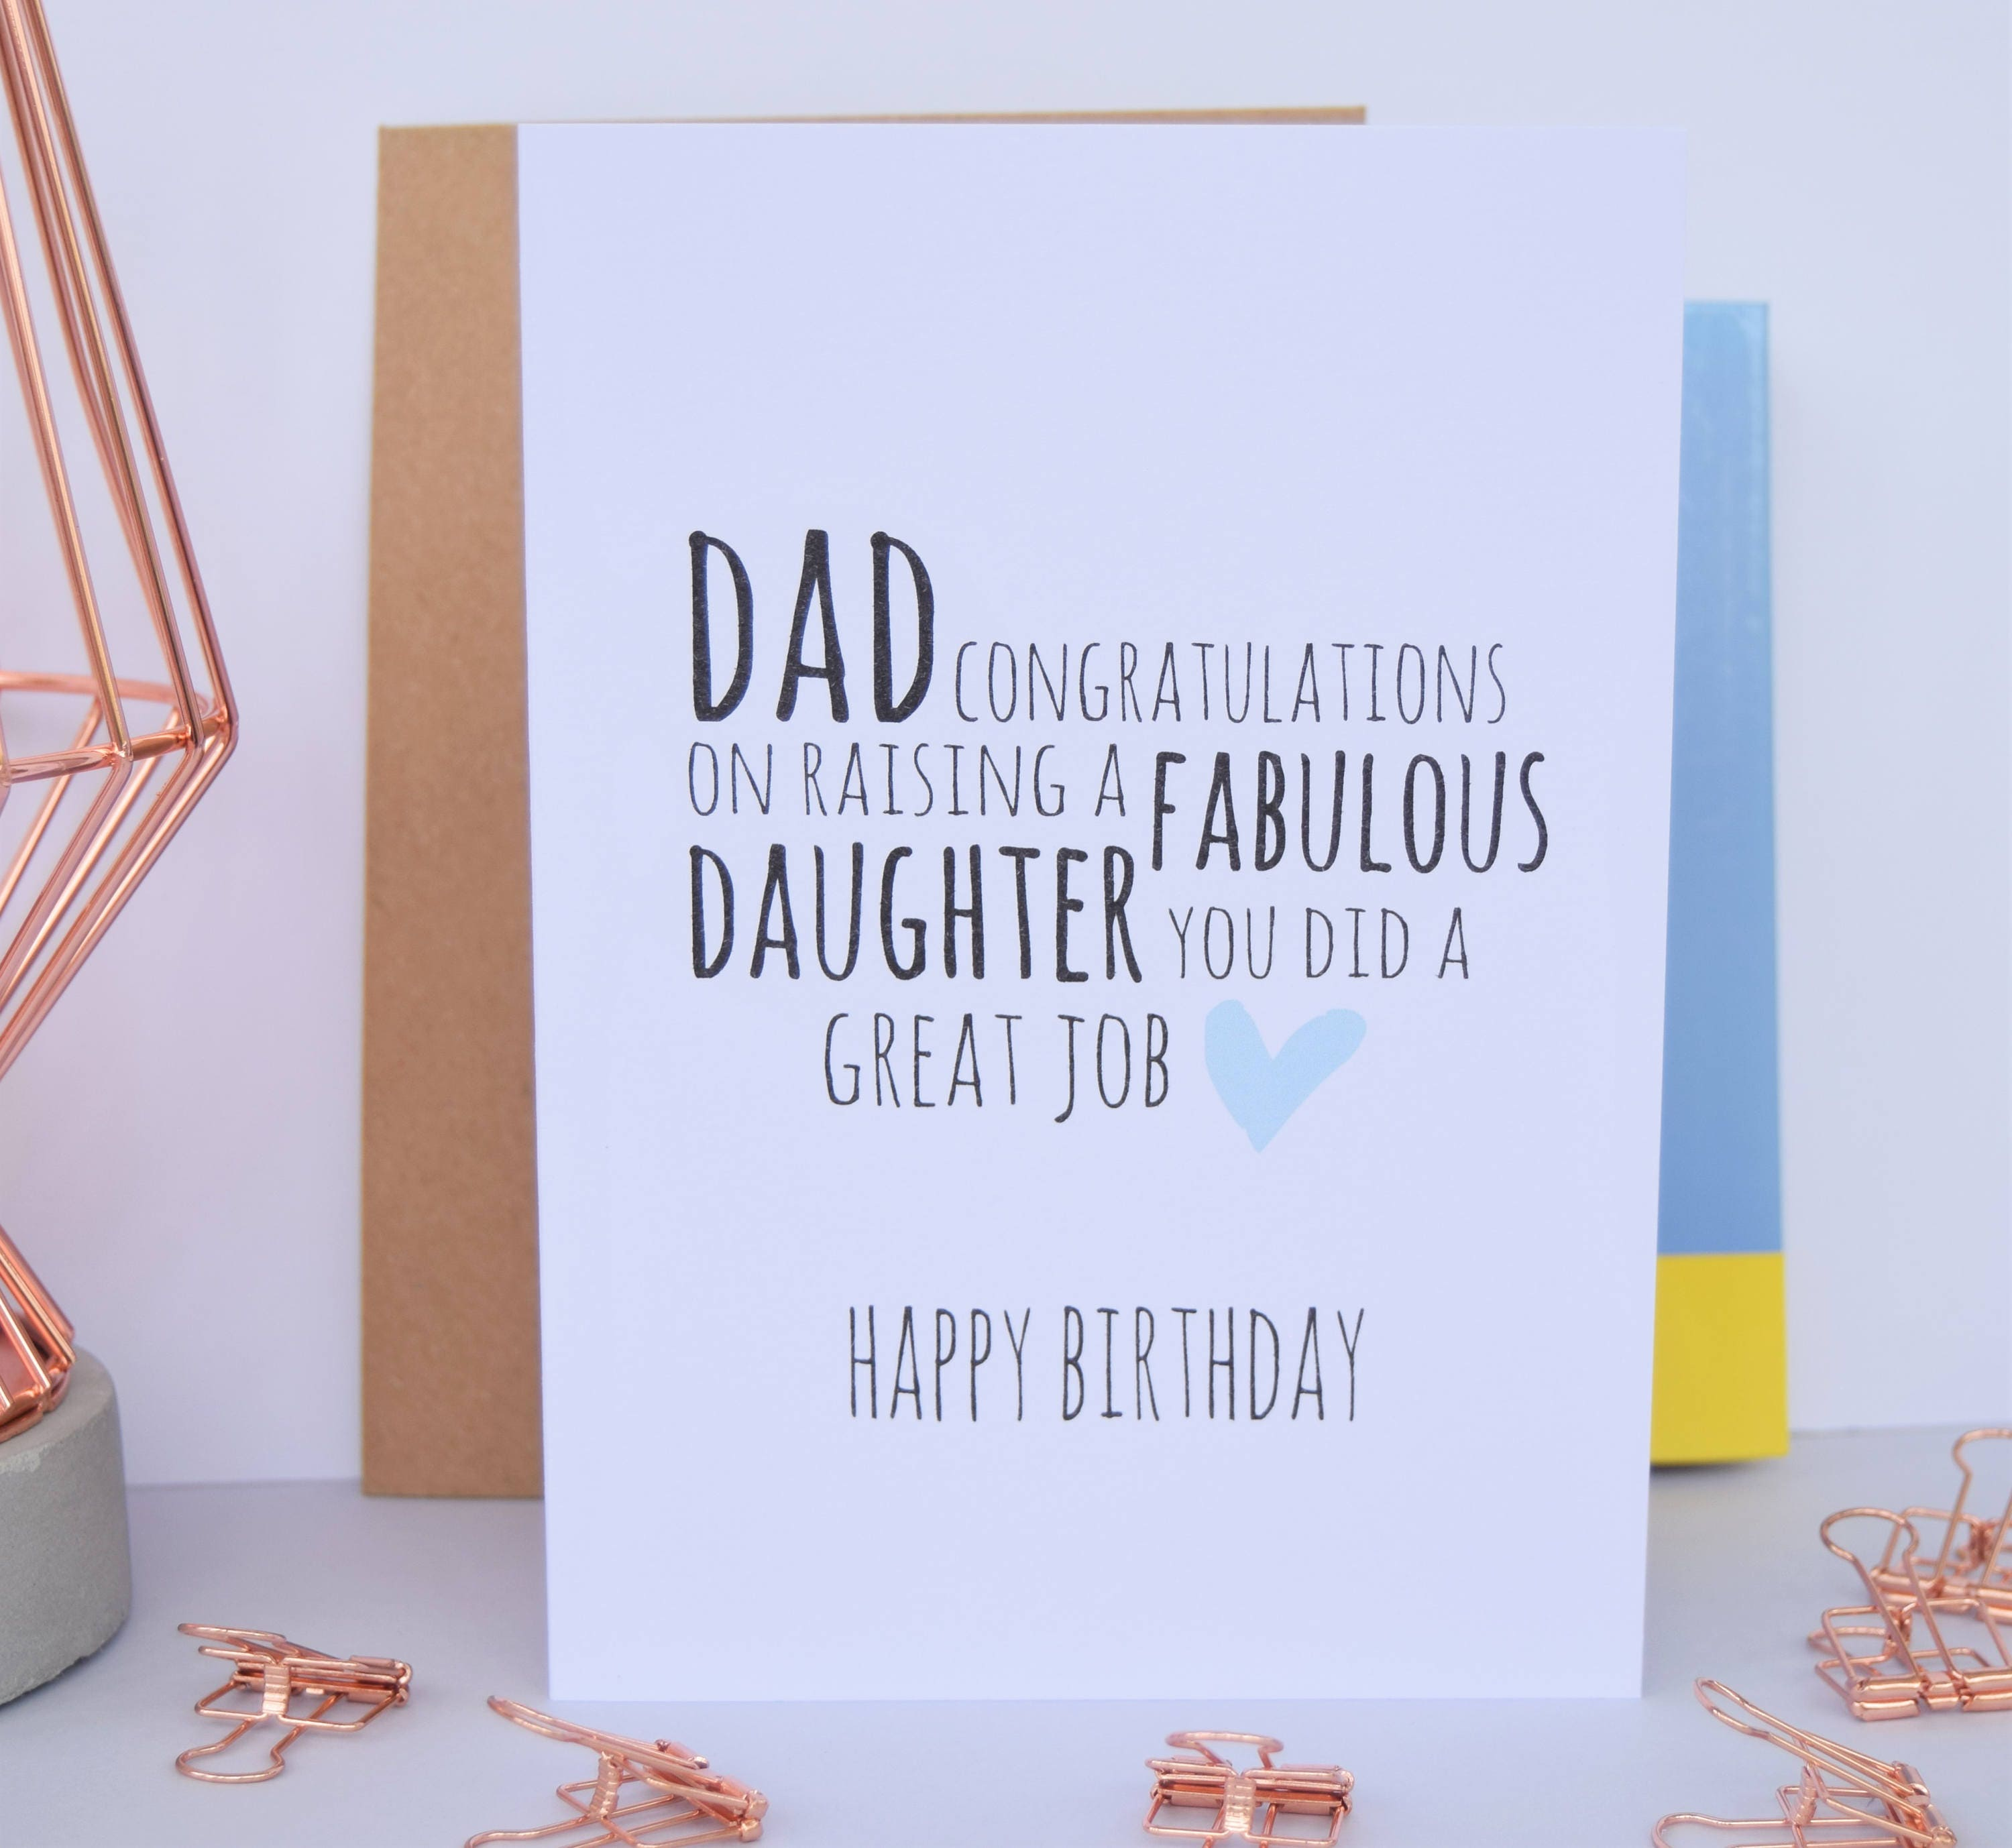 Dad birthday card fabulous daughter dad card from daughter zoom kristyandbryce Images